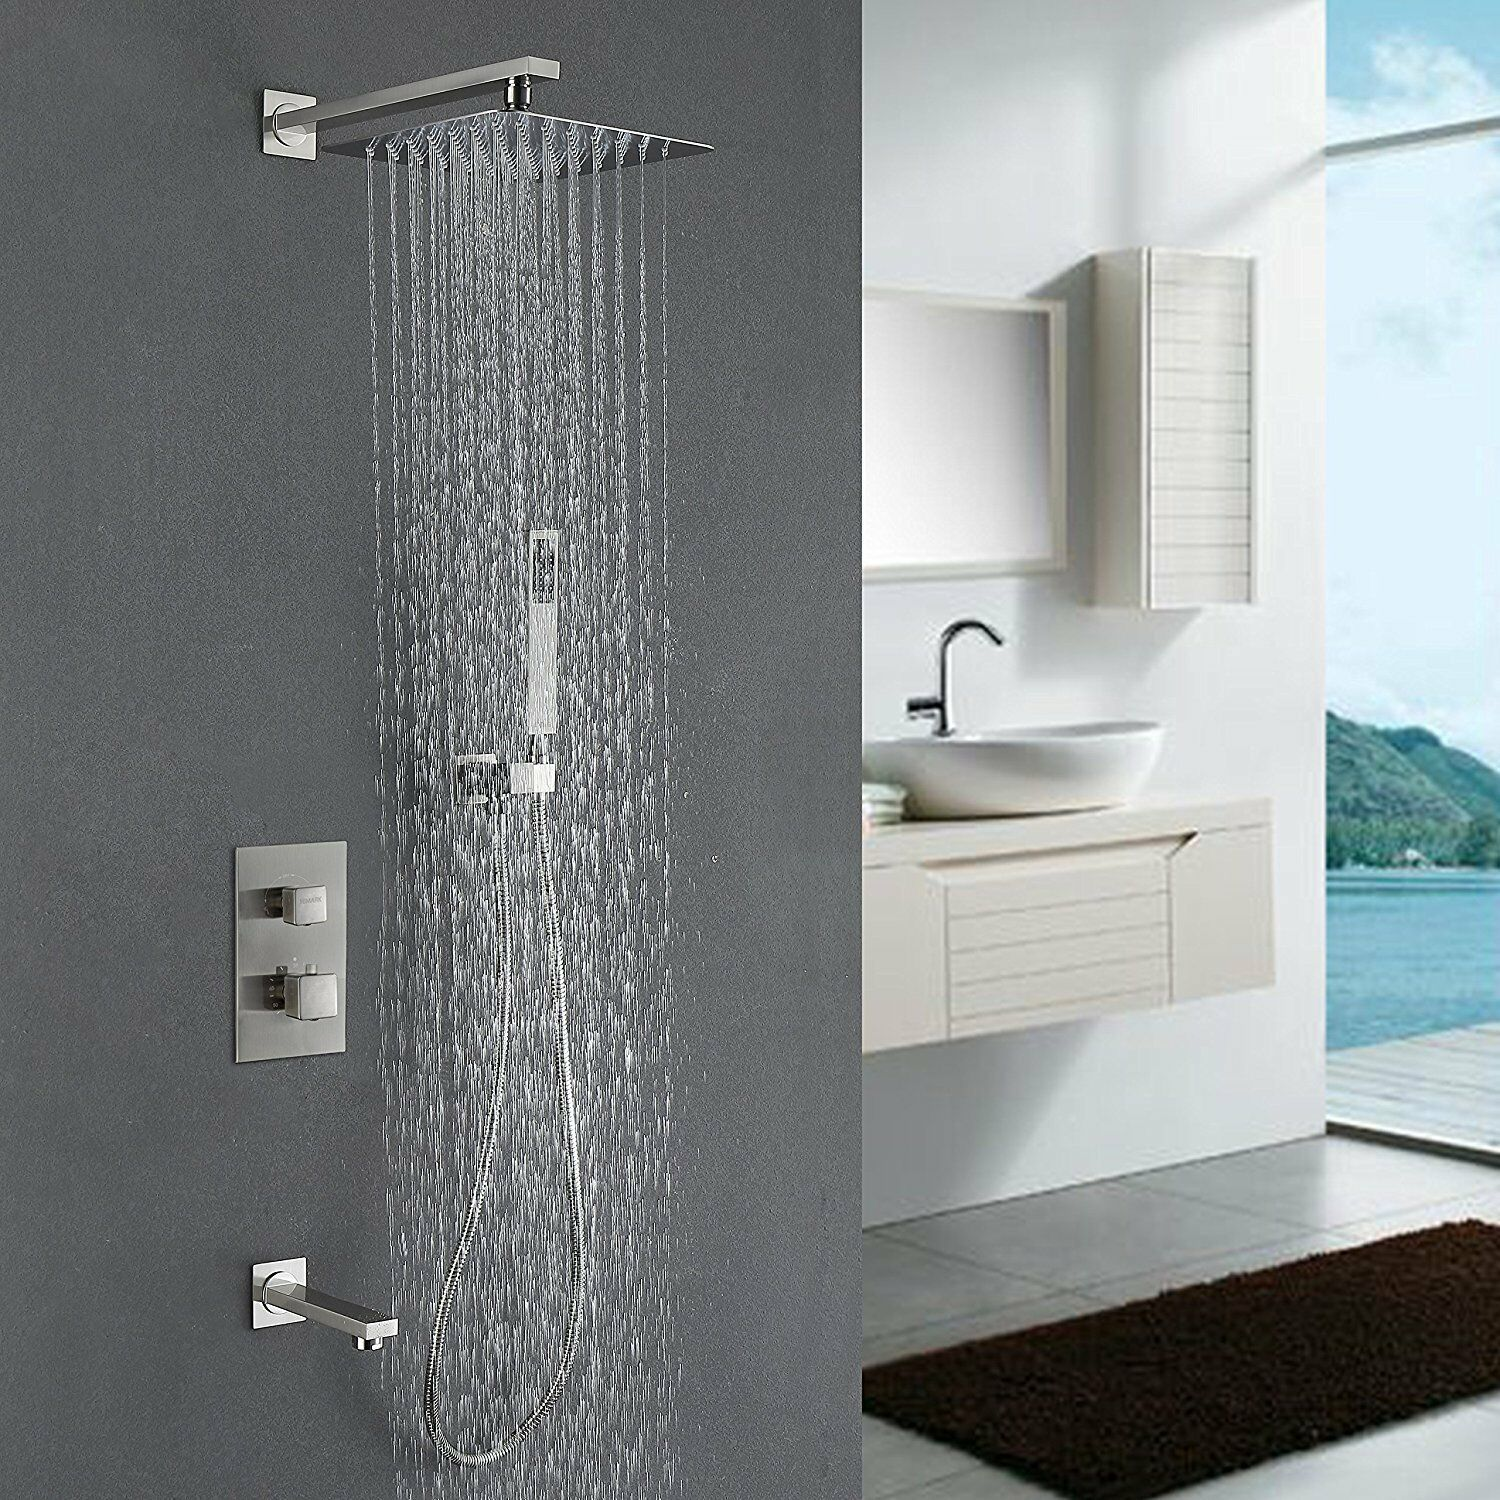 Shower Faucets 2 Dial 1 Way Bathroom Thermostatic Rain Shower Head Set Round Mixer Faucet Tap Shower Valve Panel To Adopt Advanced Technology Back To Search Resultshome Improvement